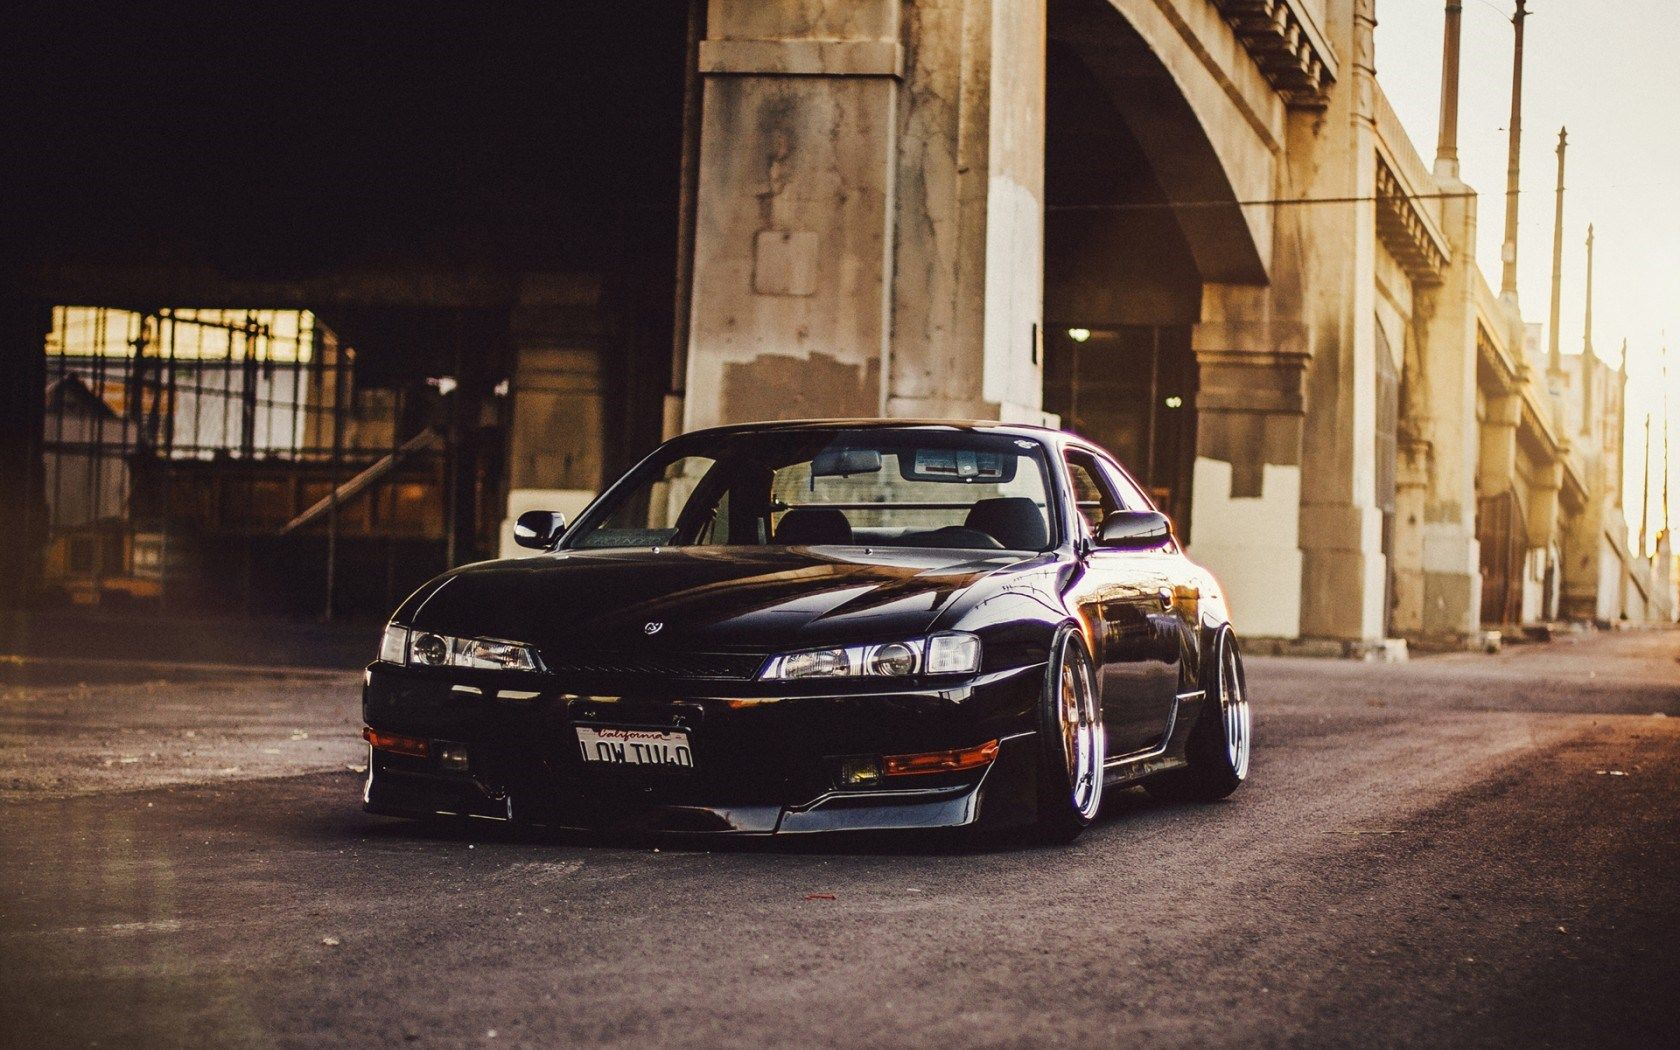 Silvia Mobili ~ Black nissan silvia tuning front view wallpaper http: www